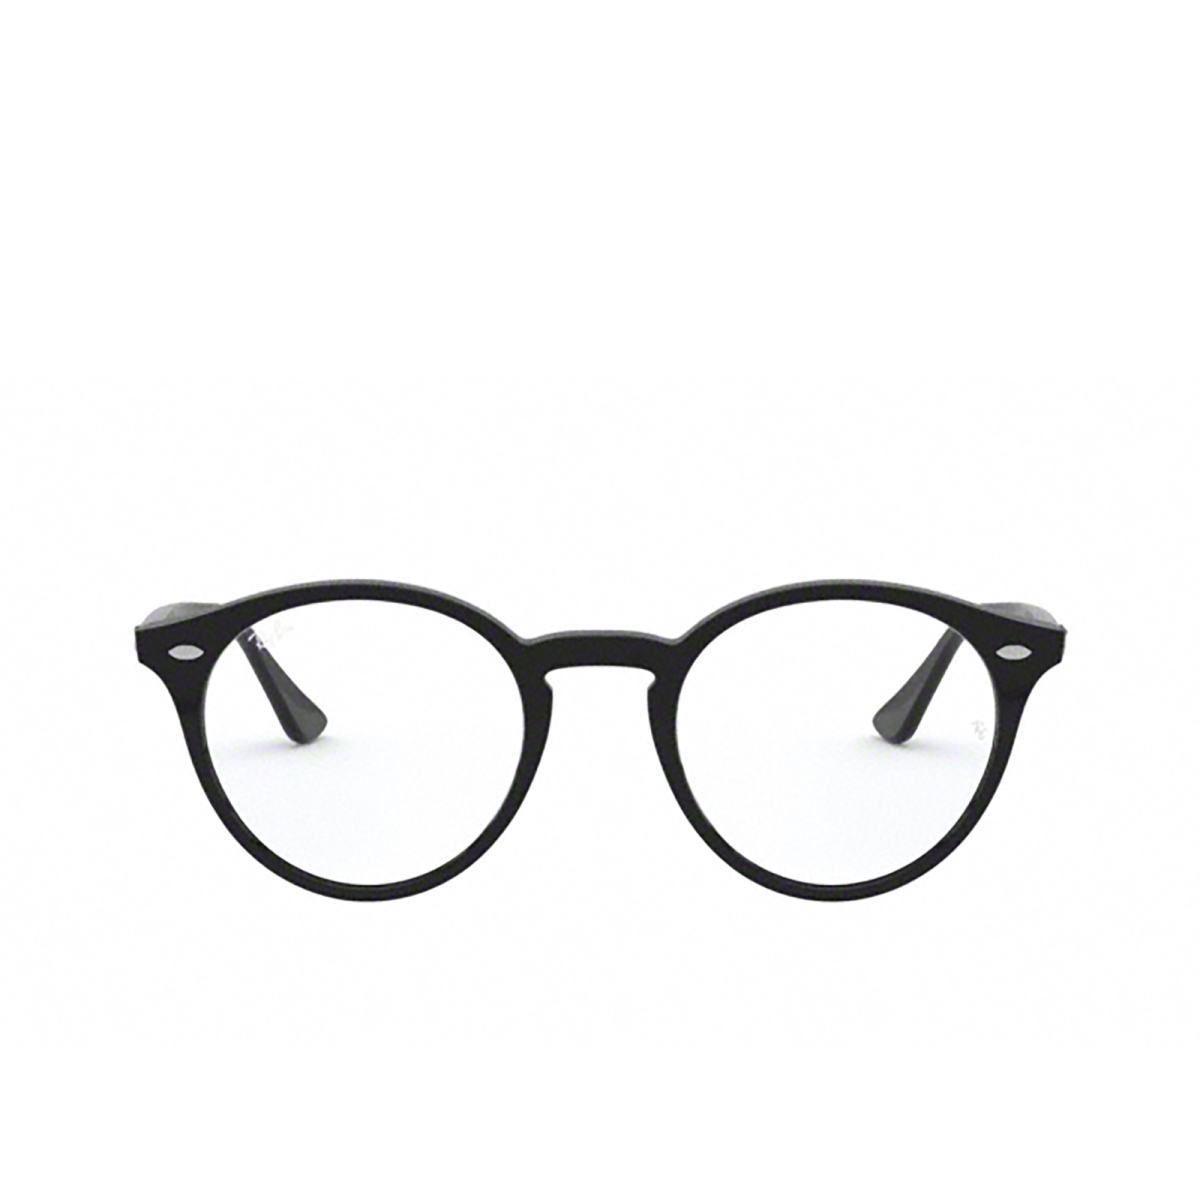 Ray-Ban® Round Eyeglasses: RX2180V color Shiny Black 2000 - front view.